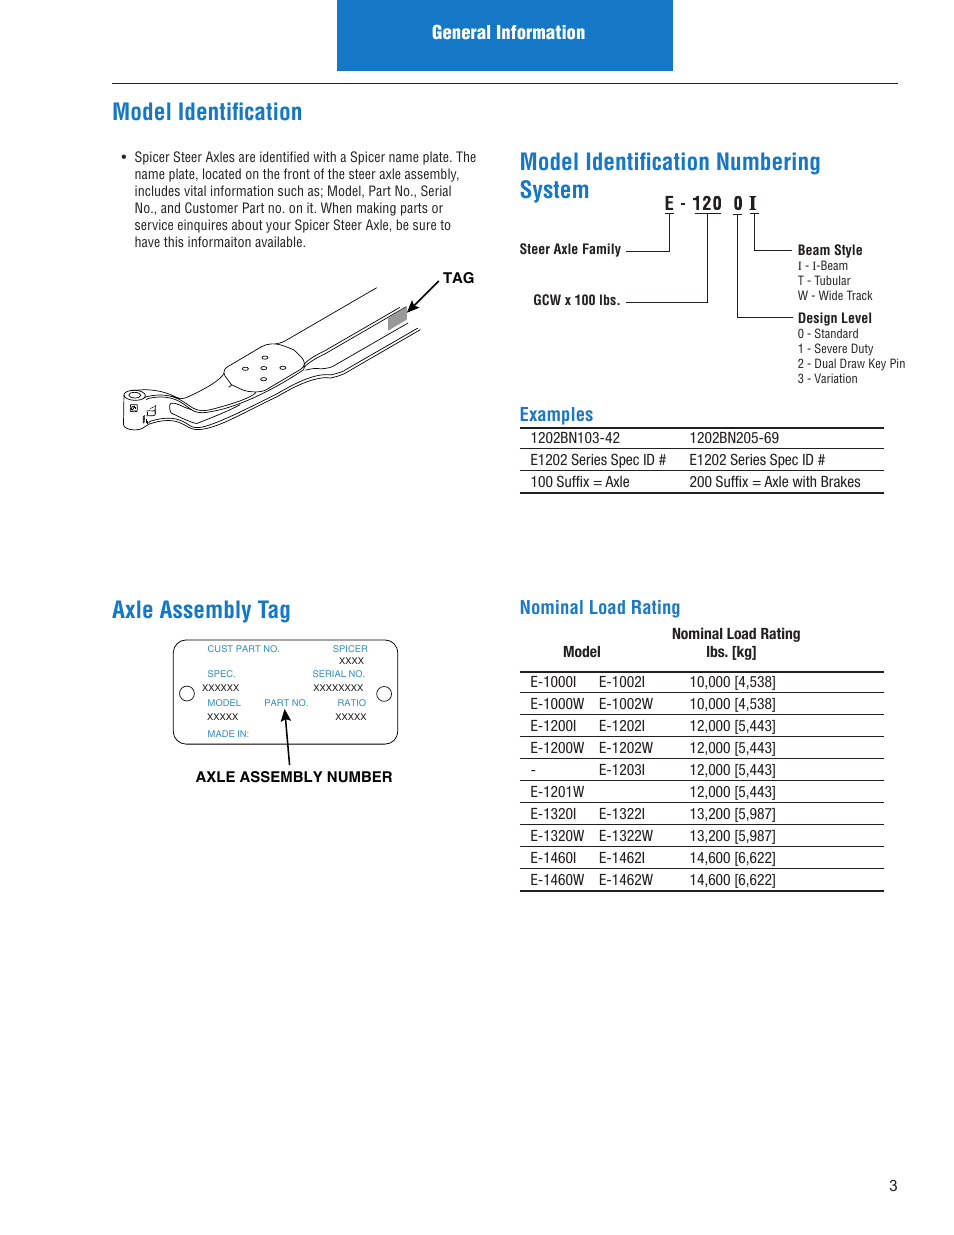 Model identification axle assembly tag, Model identification